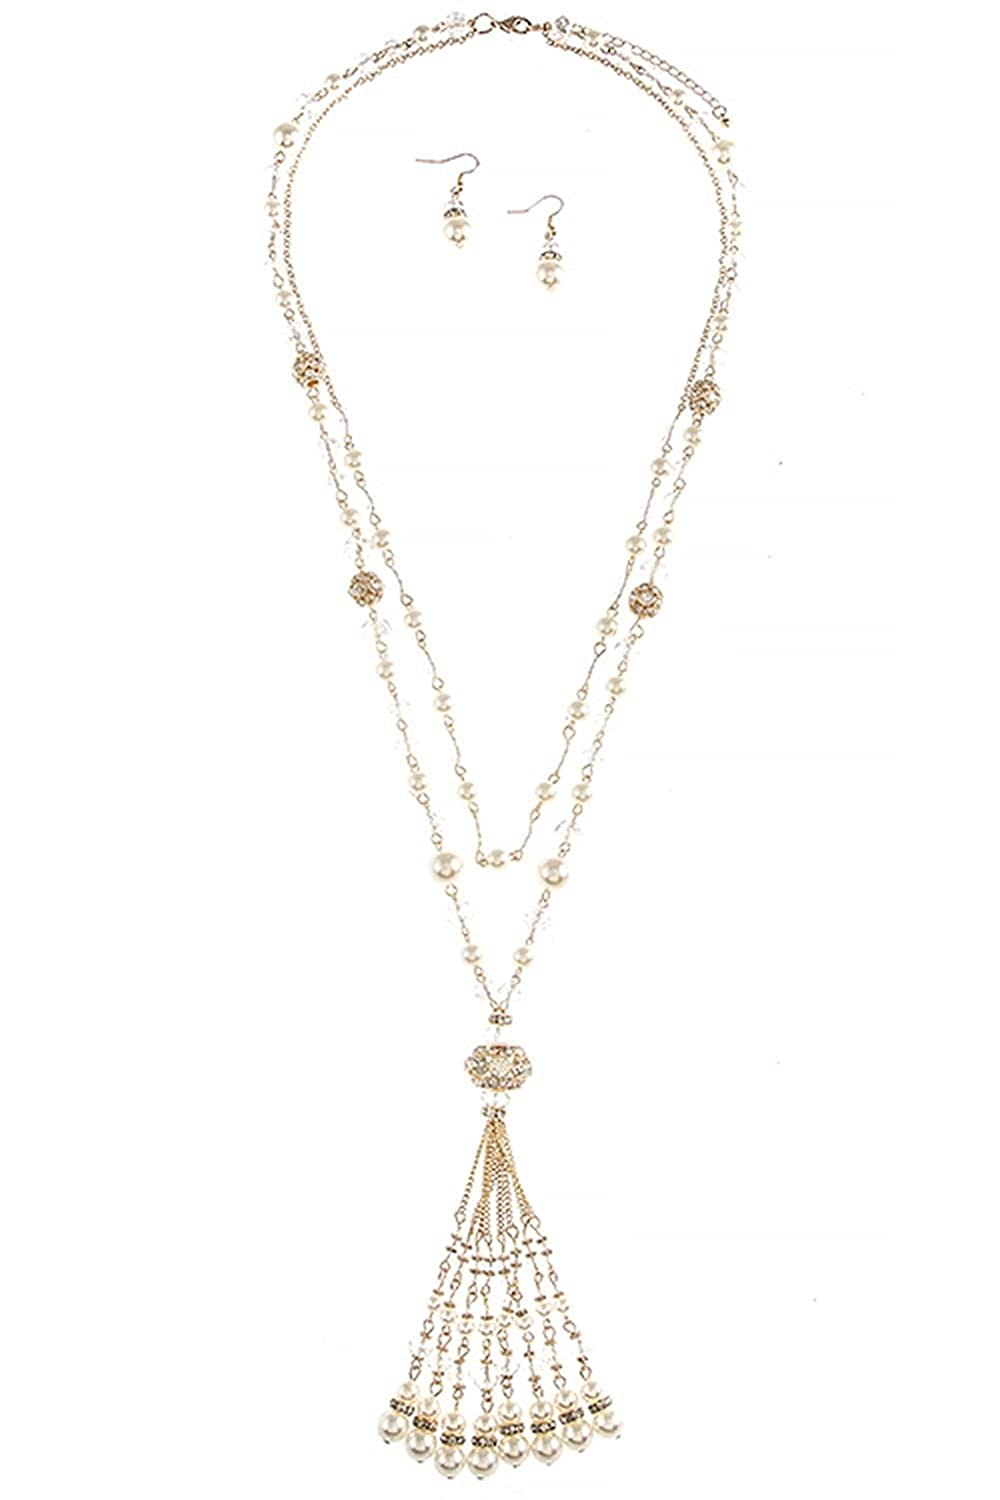 KARMAS CANVAS CRYSTAL AND PEARL BEADED TASSLE NECKLACE SET